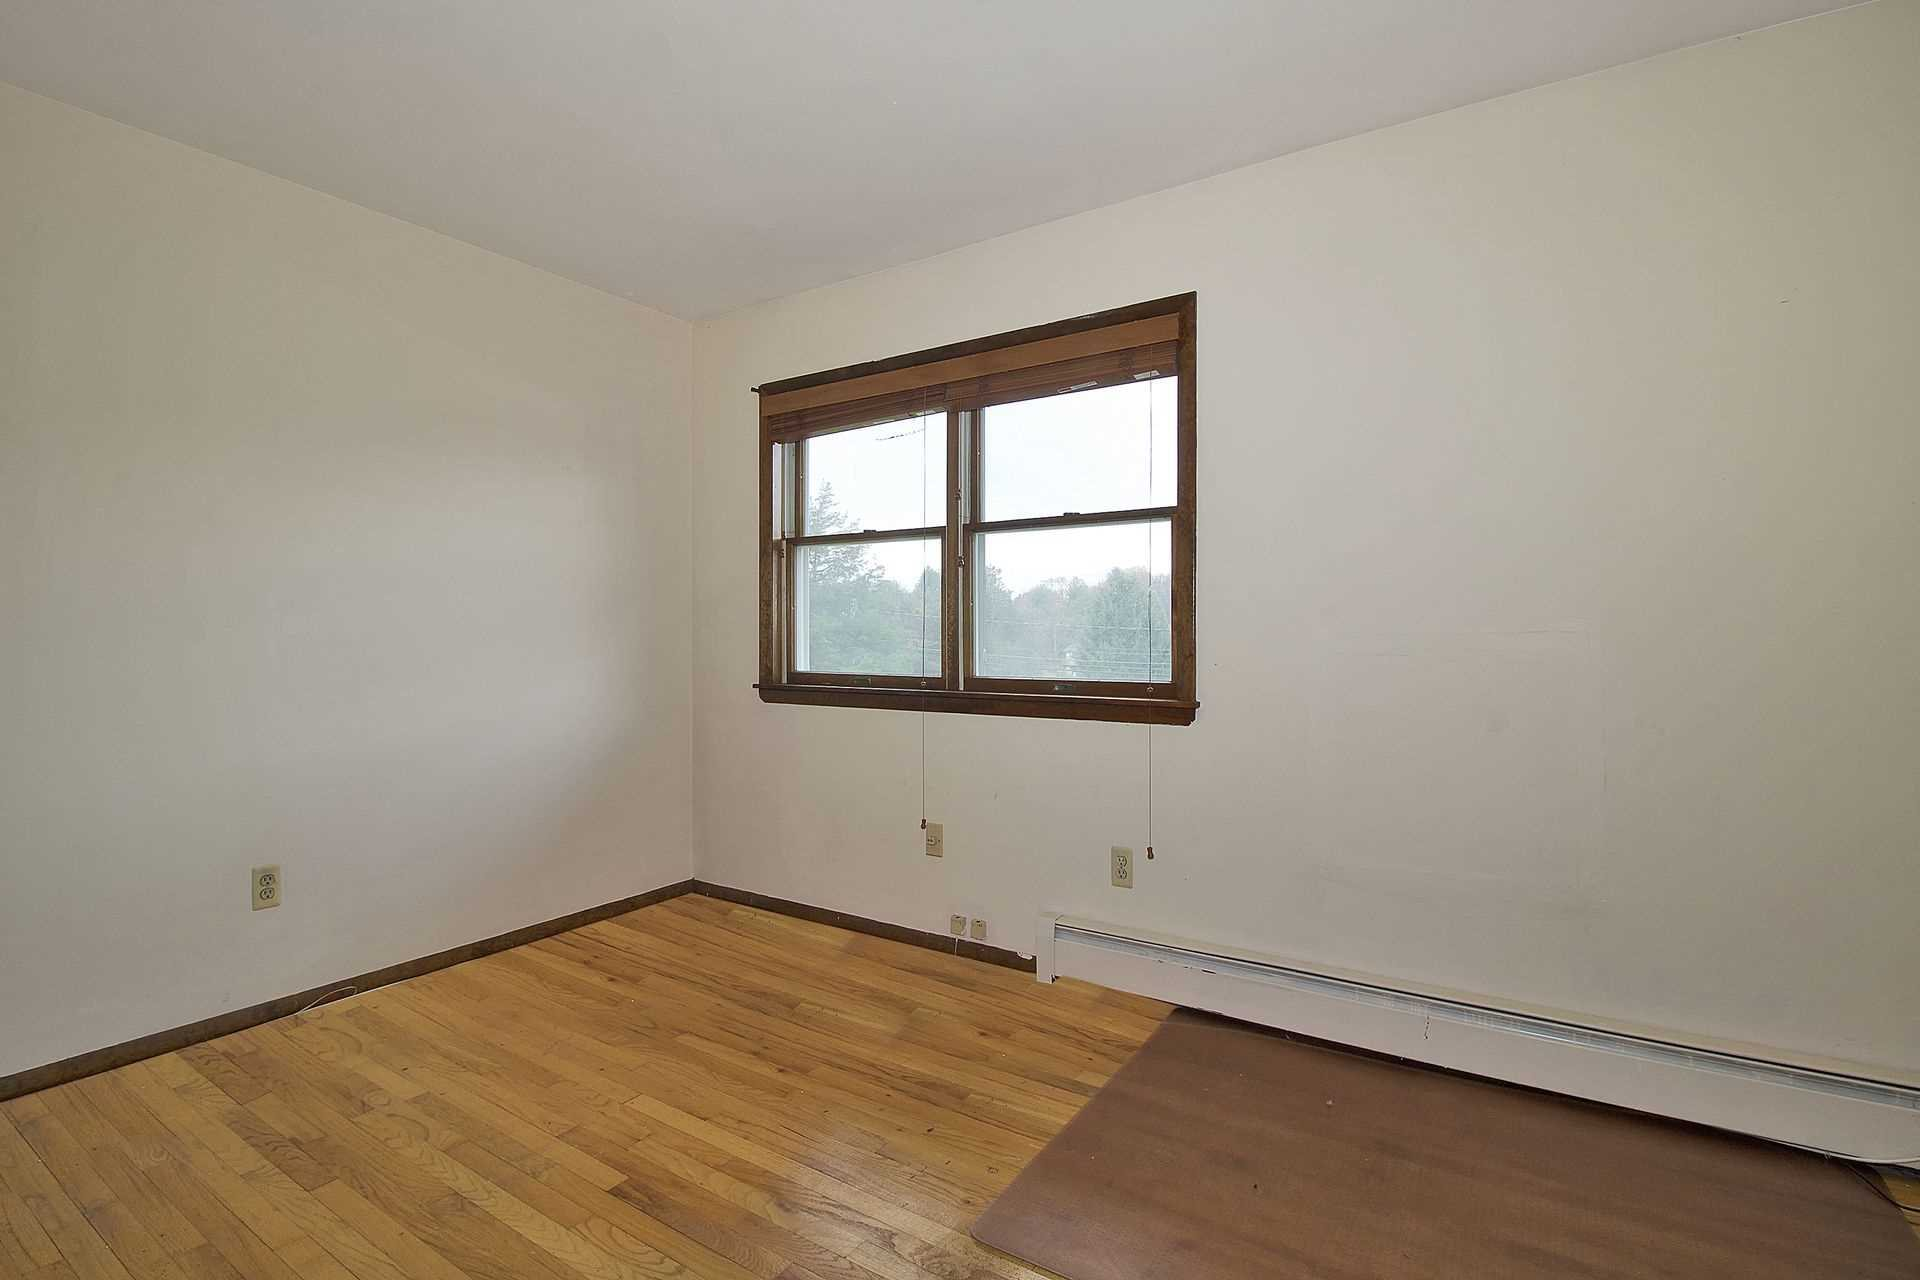 Additional photo for property listing at 4 FOSTER Road 4 FOSTER Road East Fishkill, New York 12533 United States